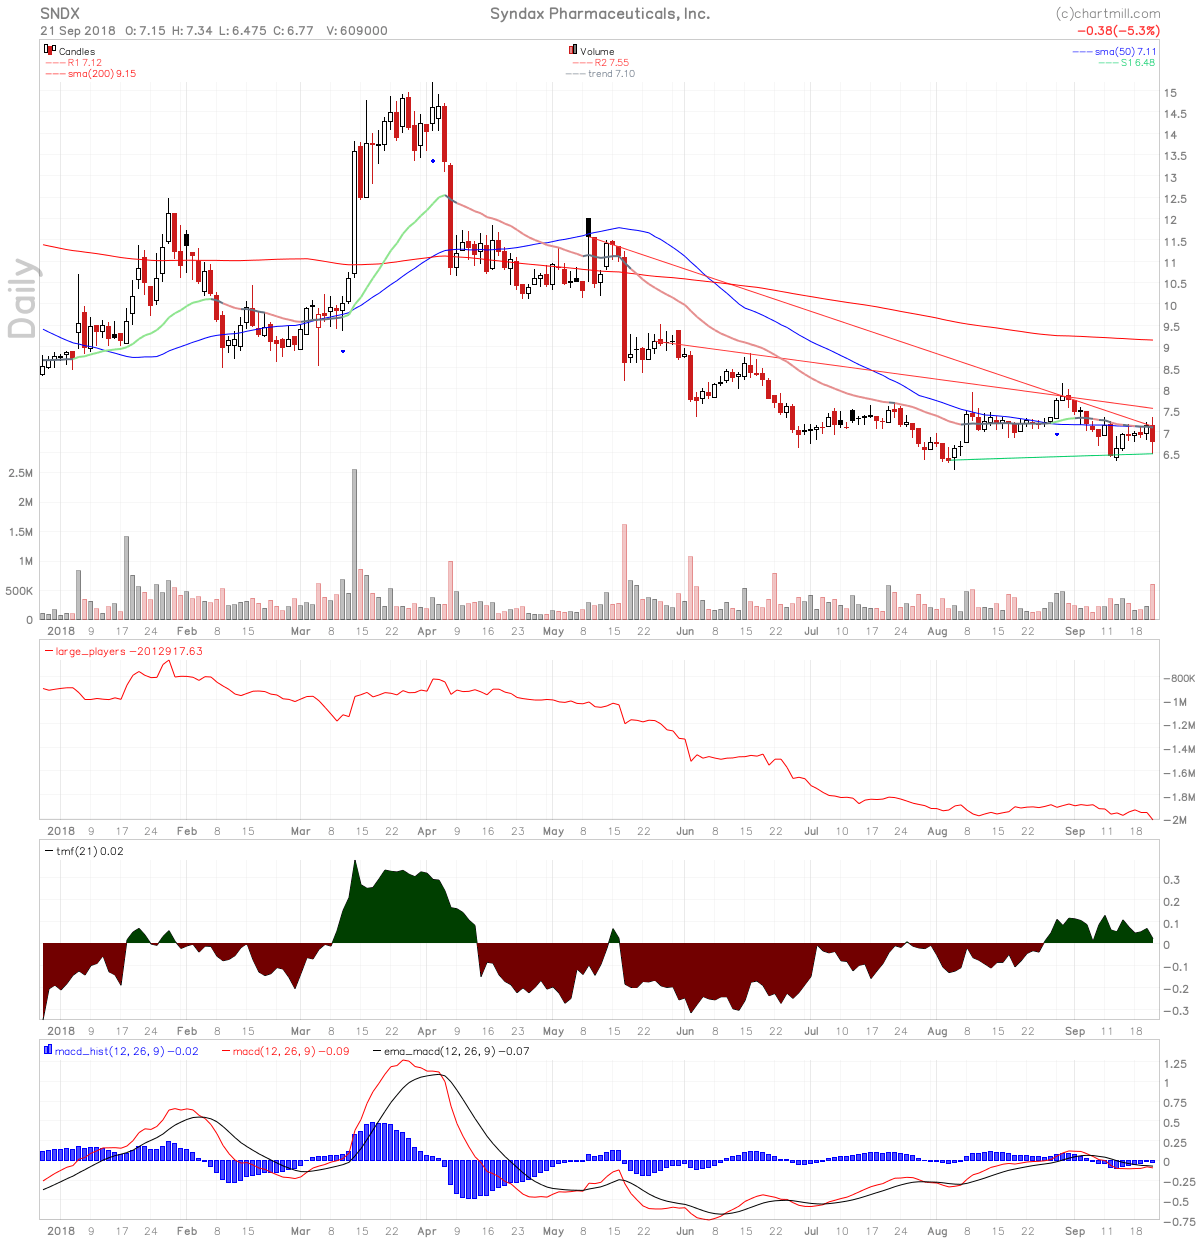 SNDX chart with falling large players volume